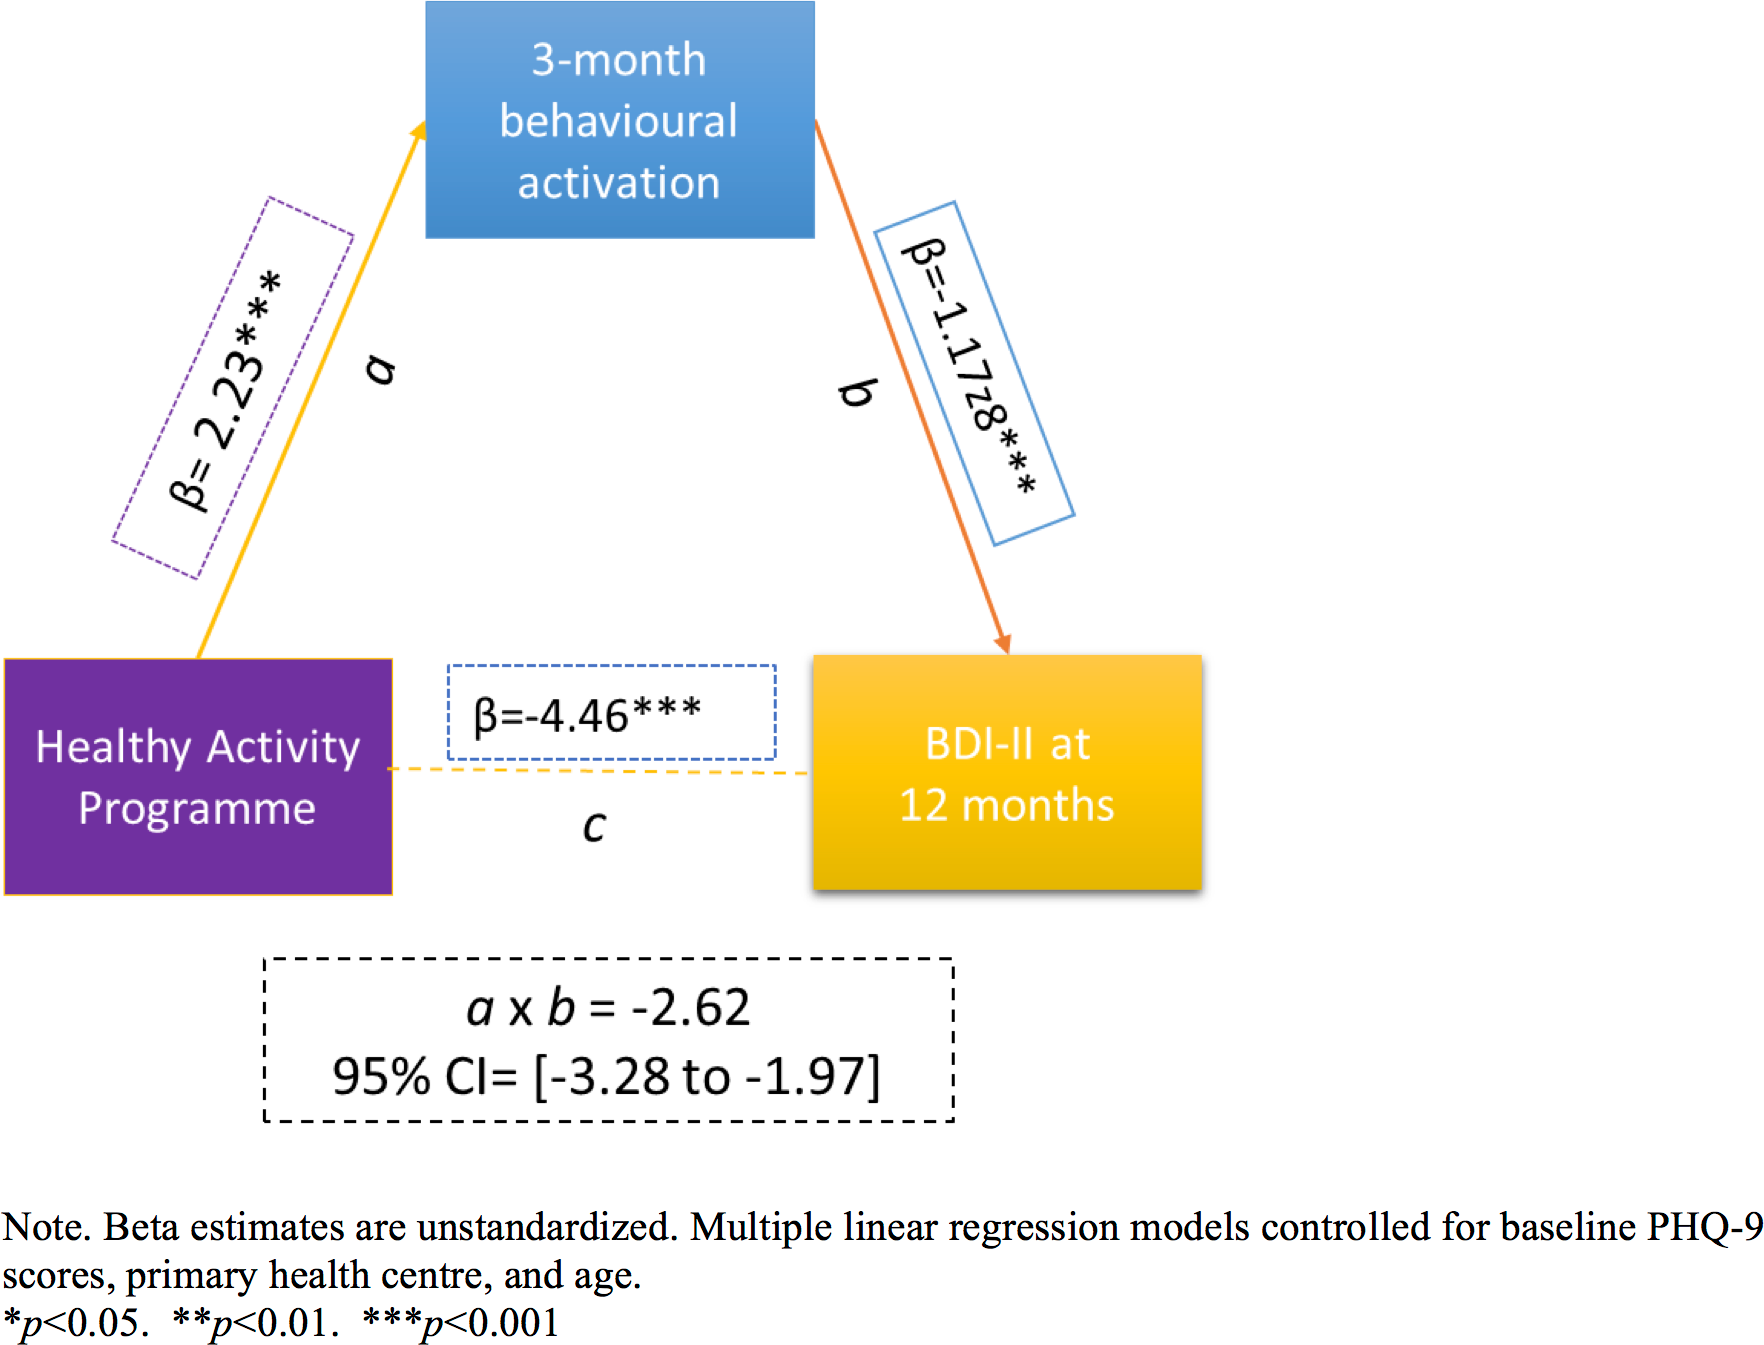 The mediating effect of behavioural activation at 3 months on the effectiveness of the HAP on depression severity at 12 months.